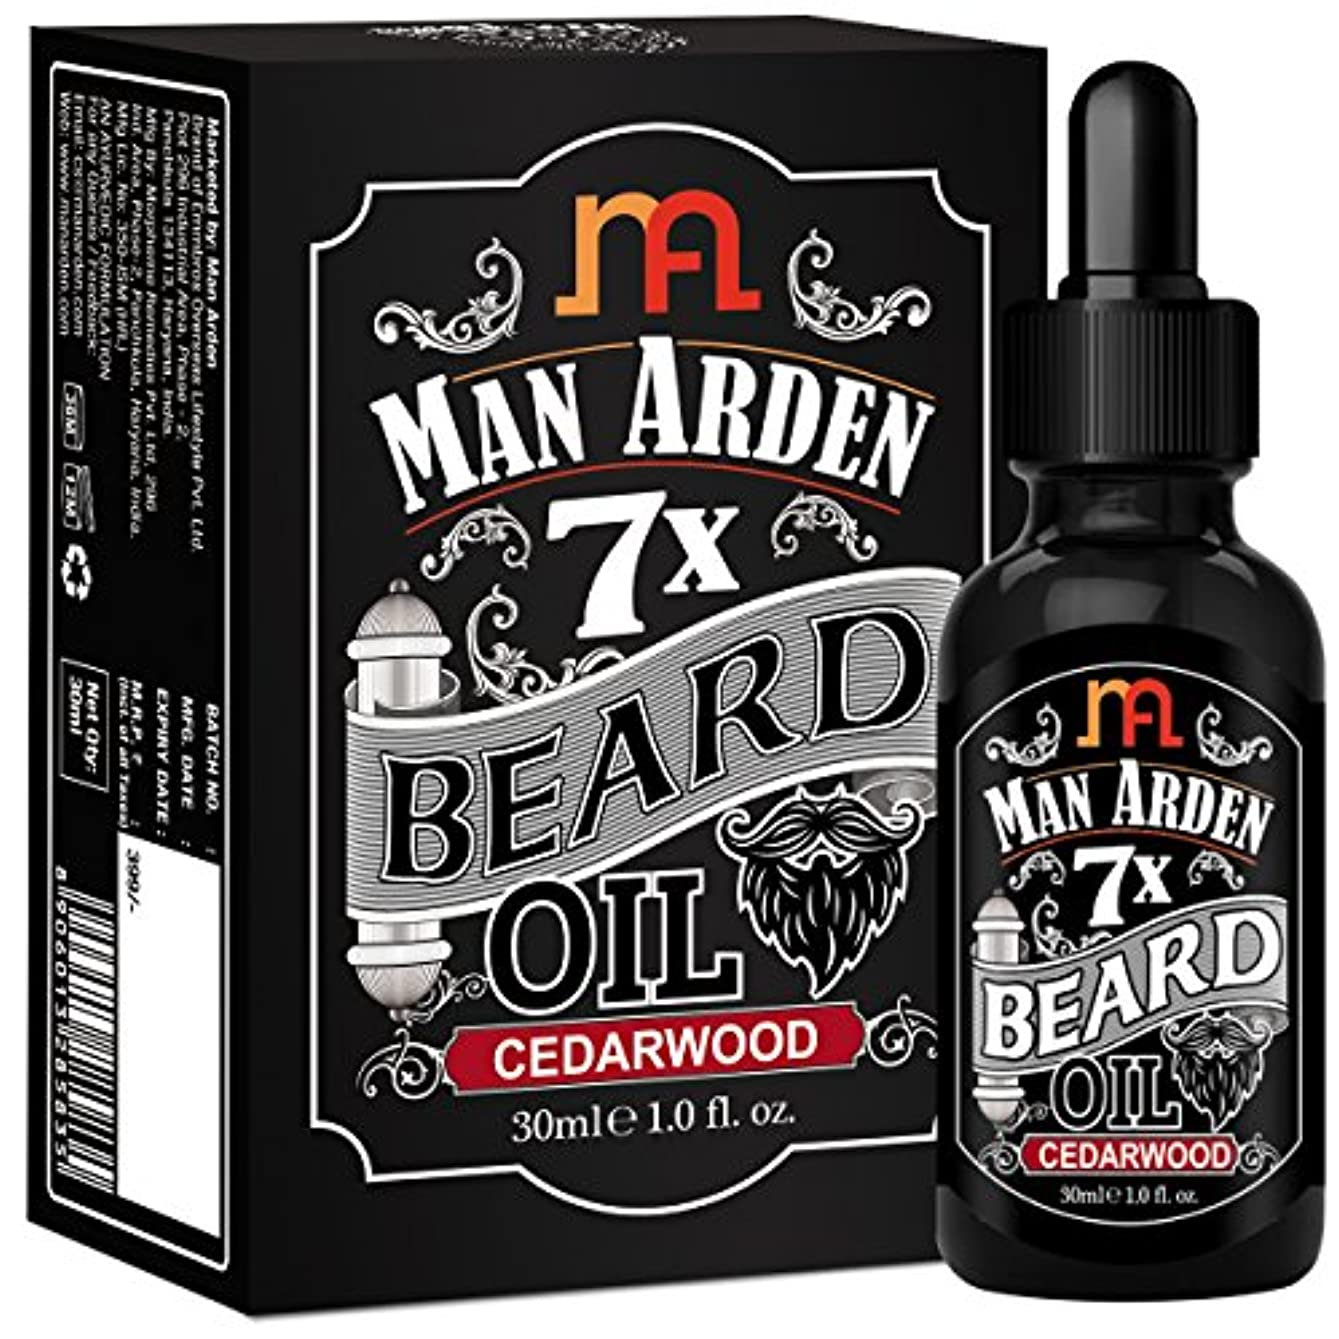 出口アーサーコナンドイル講義Man Arden 7X Beard Oil 30ml (Cedarwood) - 7 Premium Oils Blend For Beard Growth & Nourishment